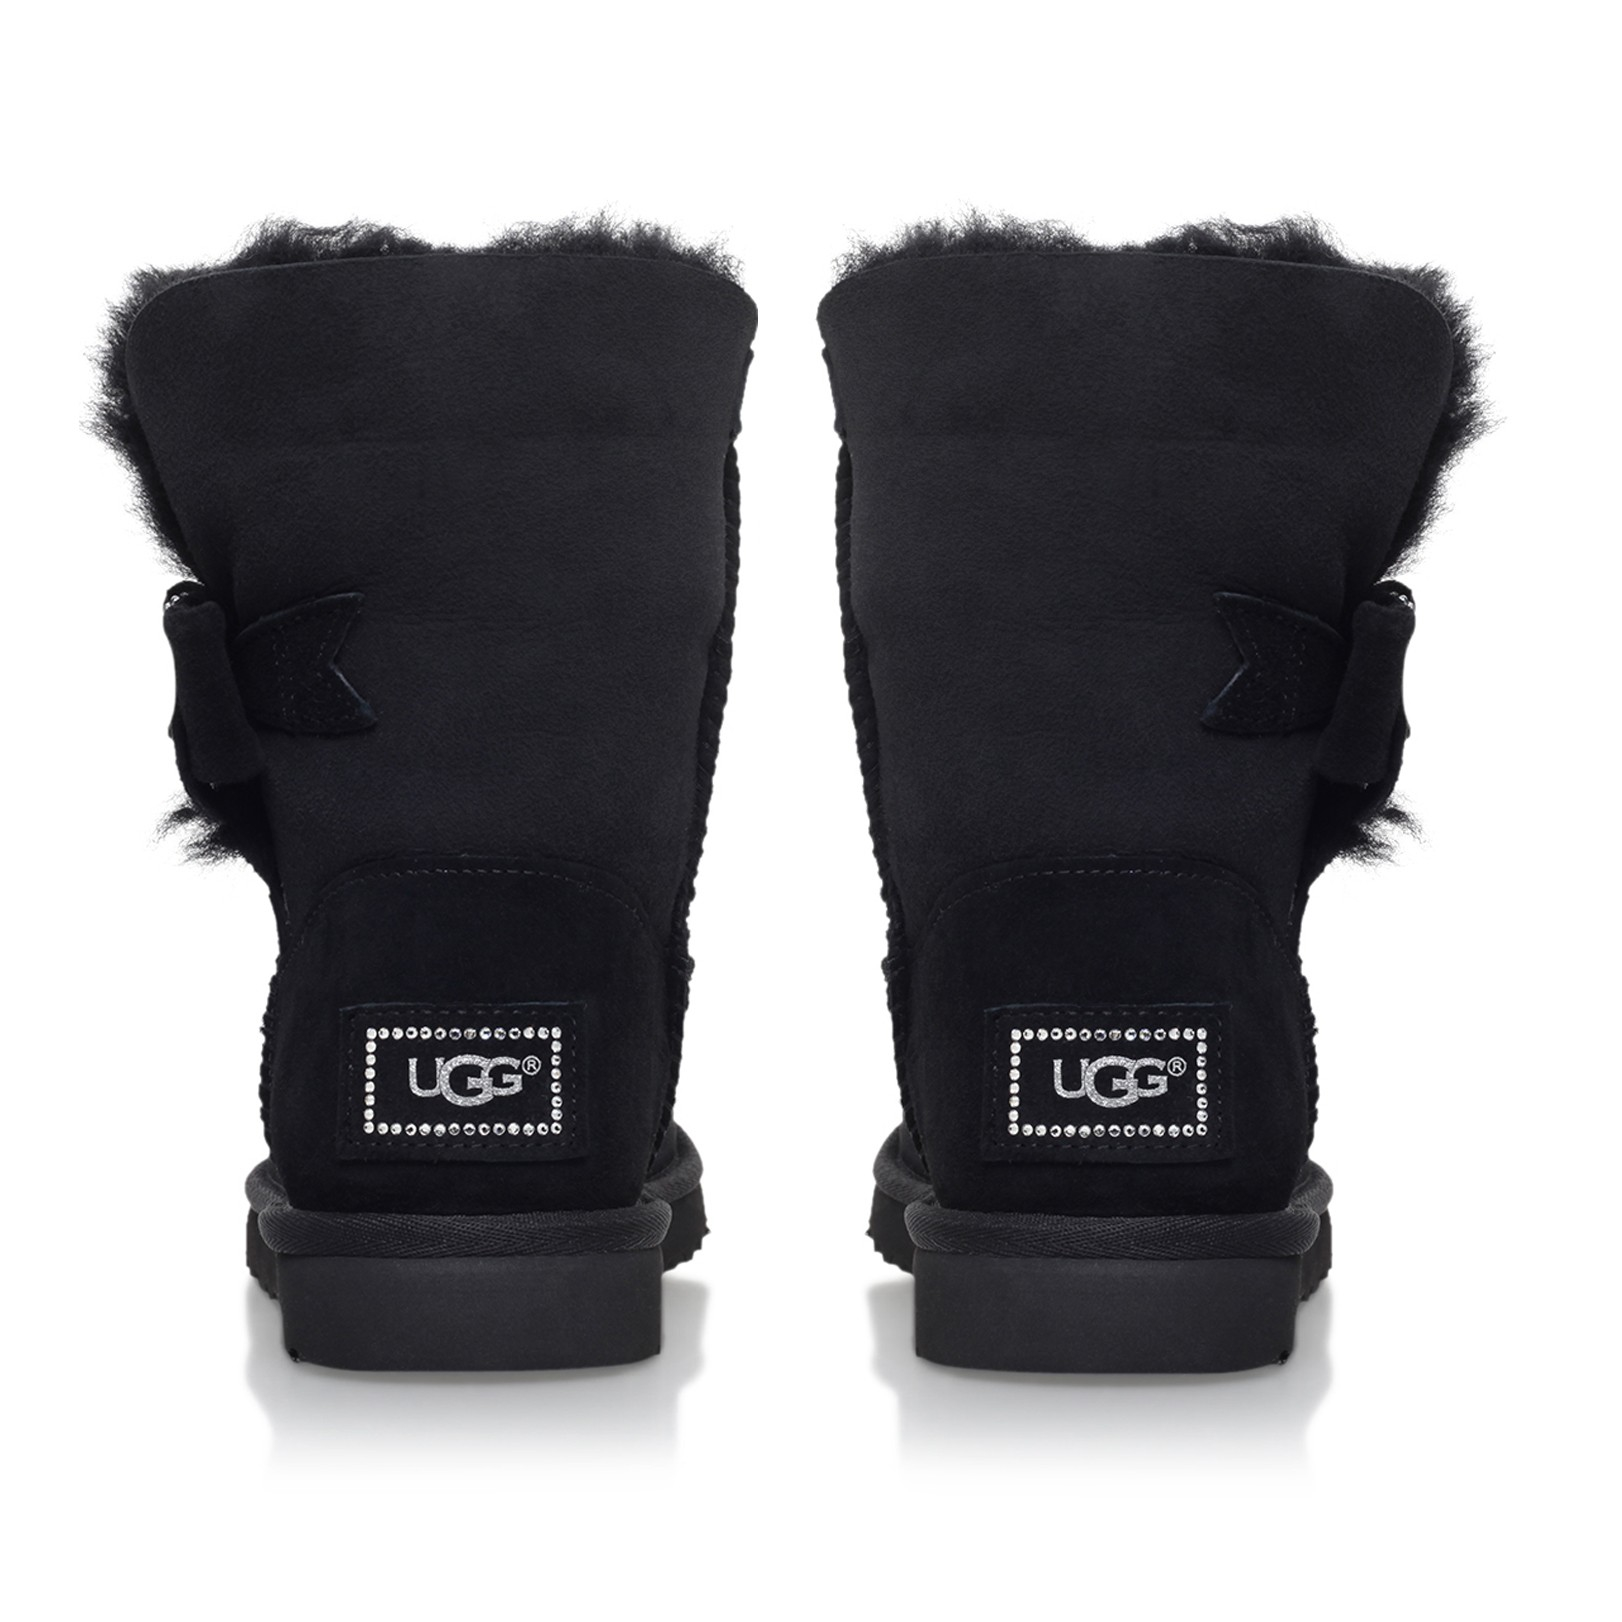 ugg boots material outlets in new jersey